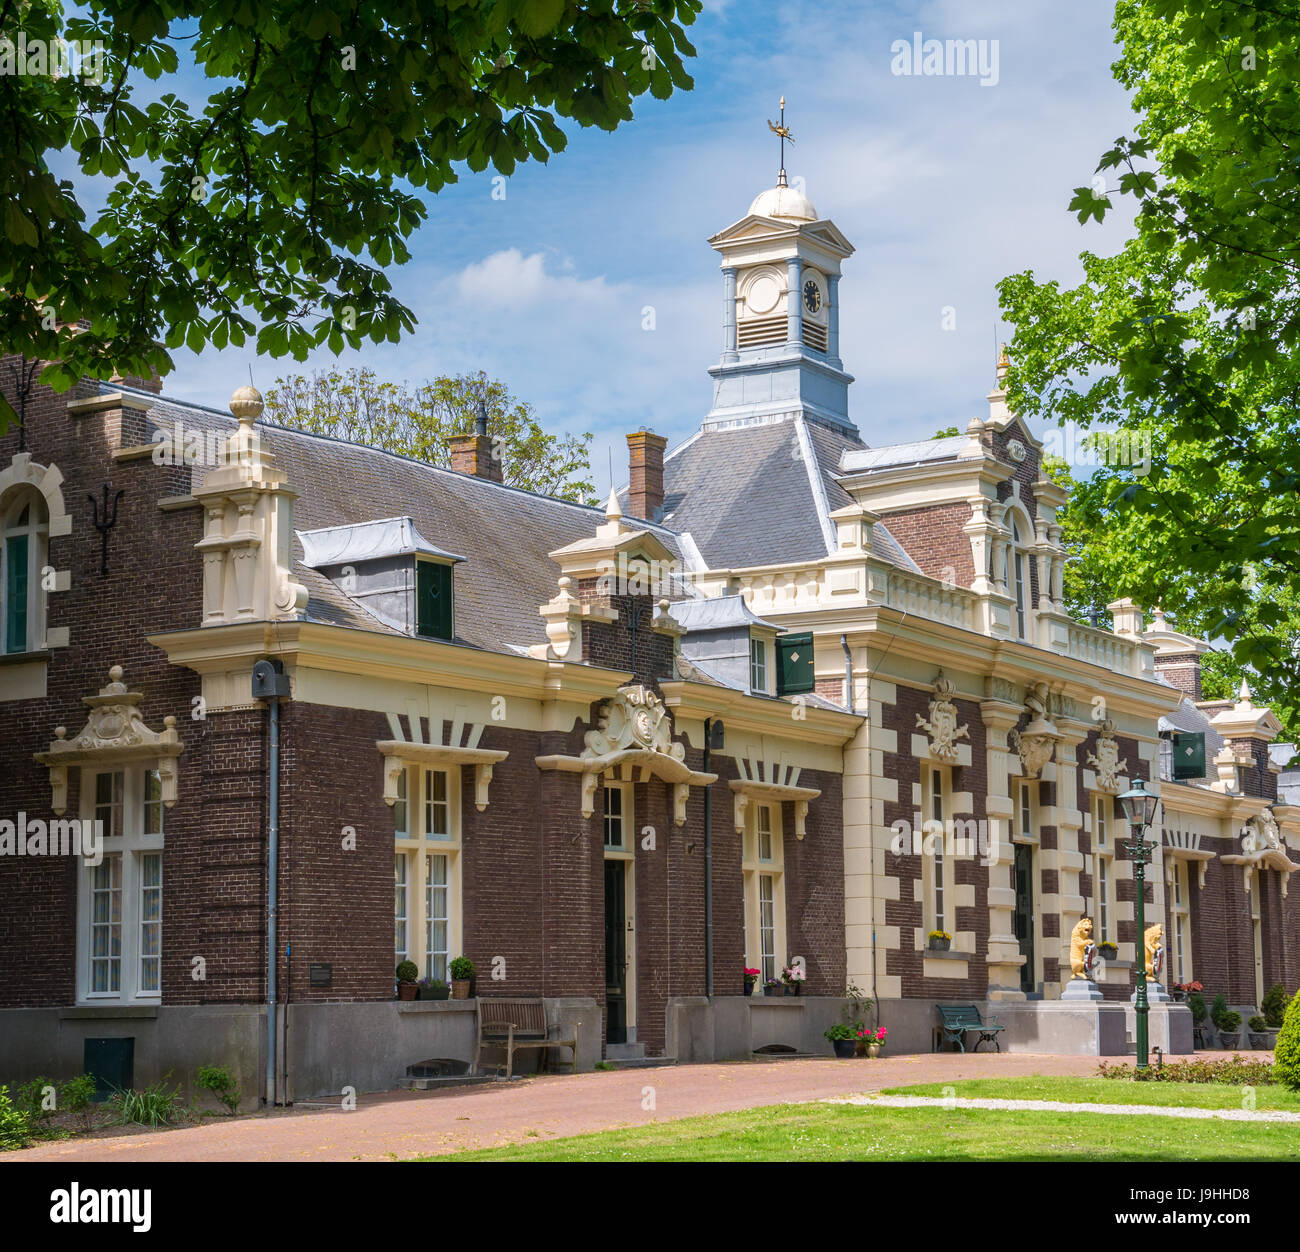 Main building of Asylum for old and poor Mariners in Brielle, Voorne-Putten, South Holland, Netherlands - Stock Image